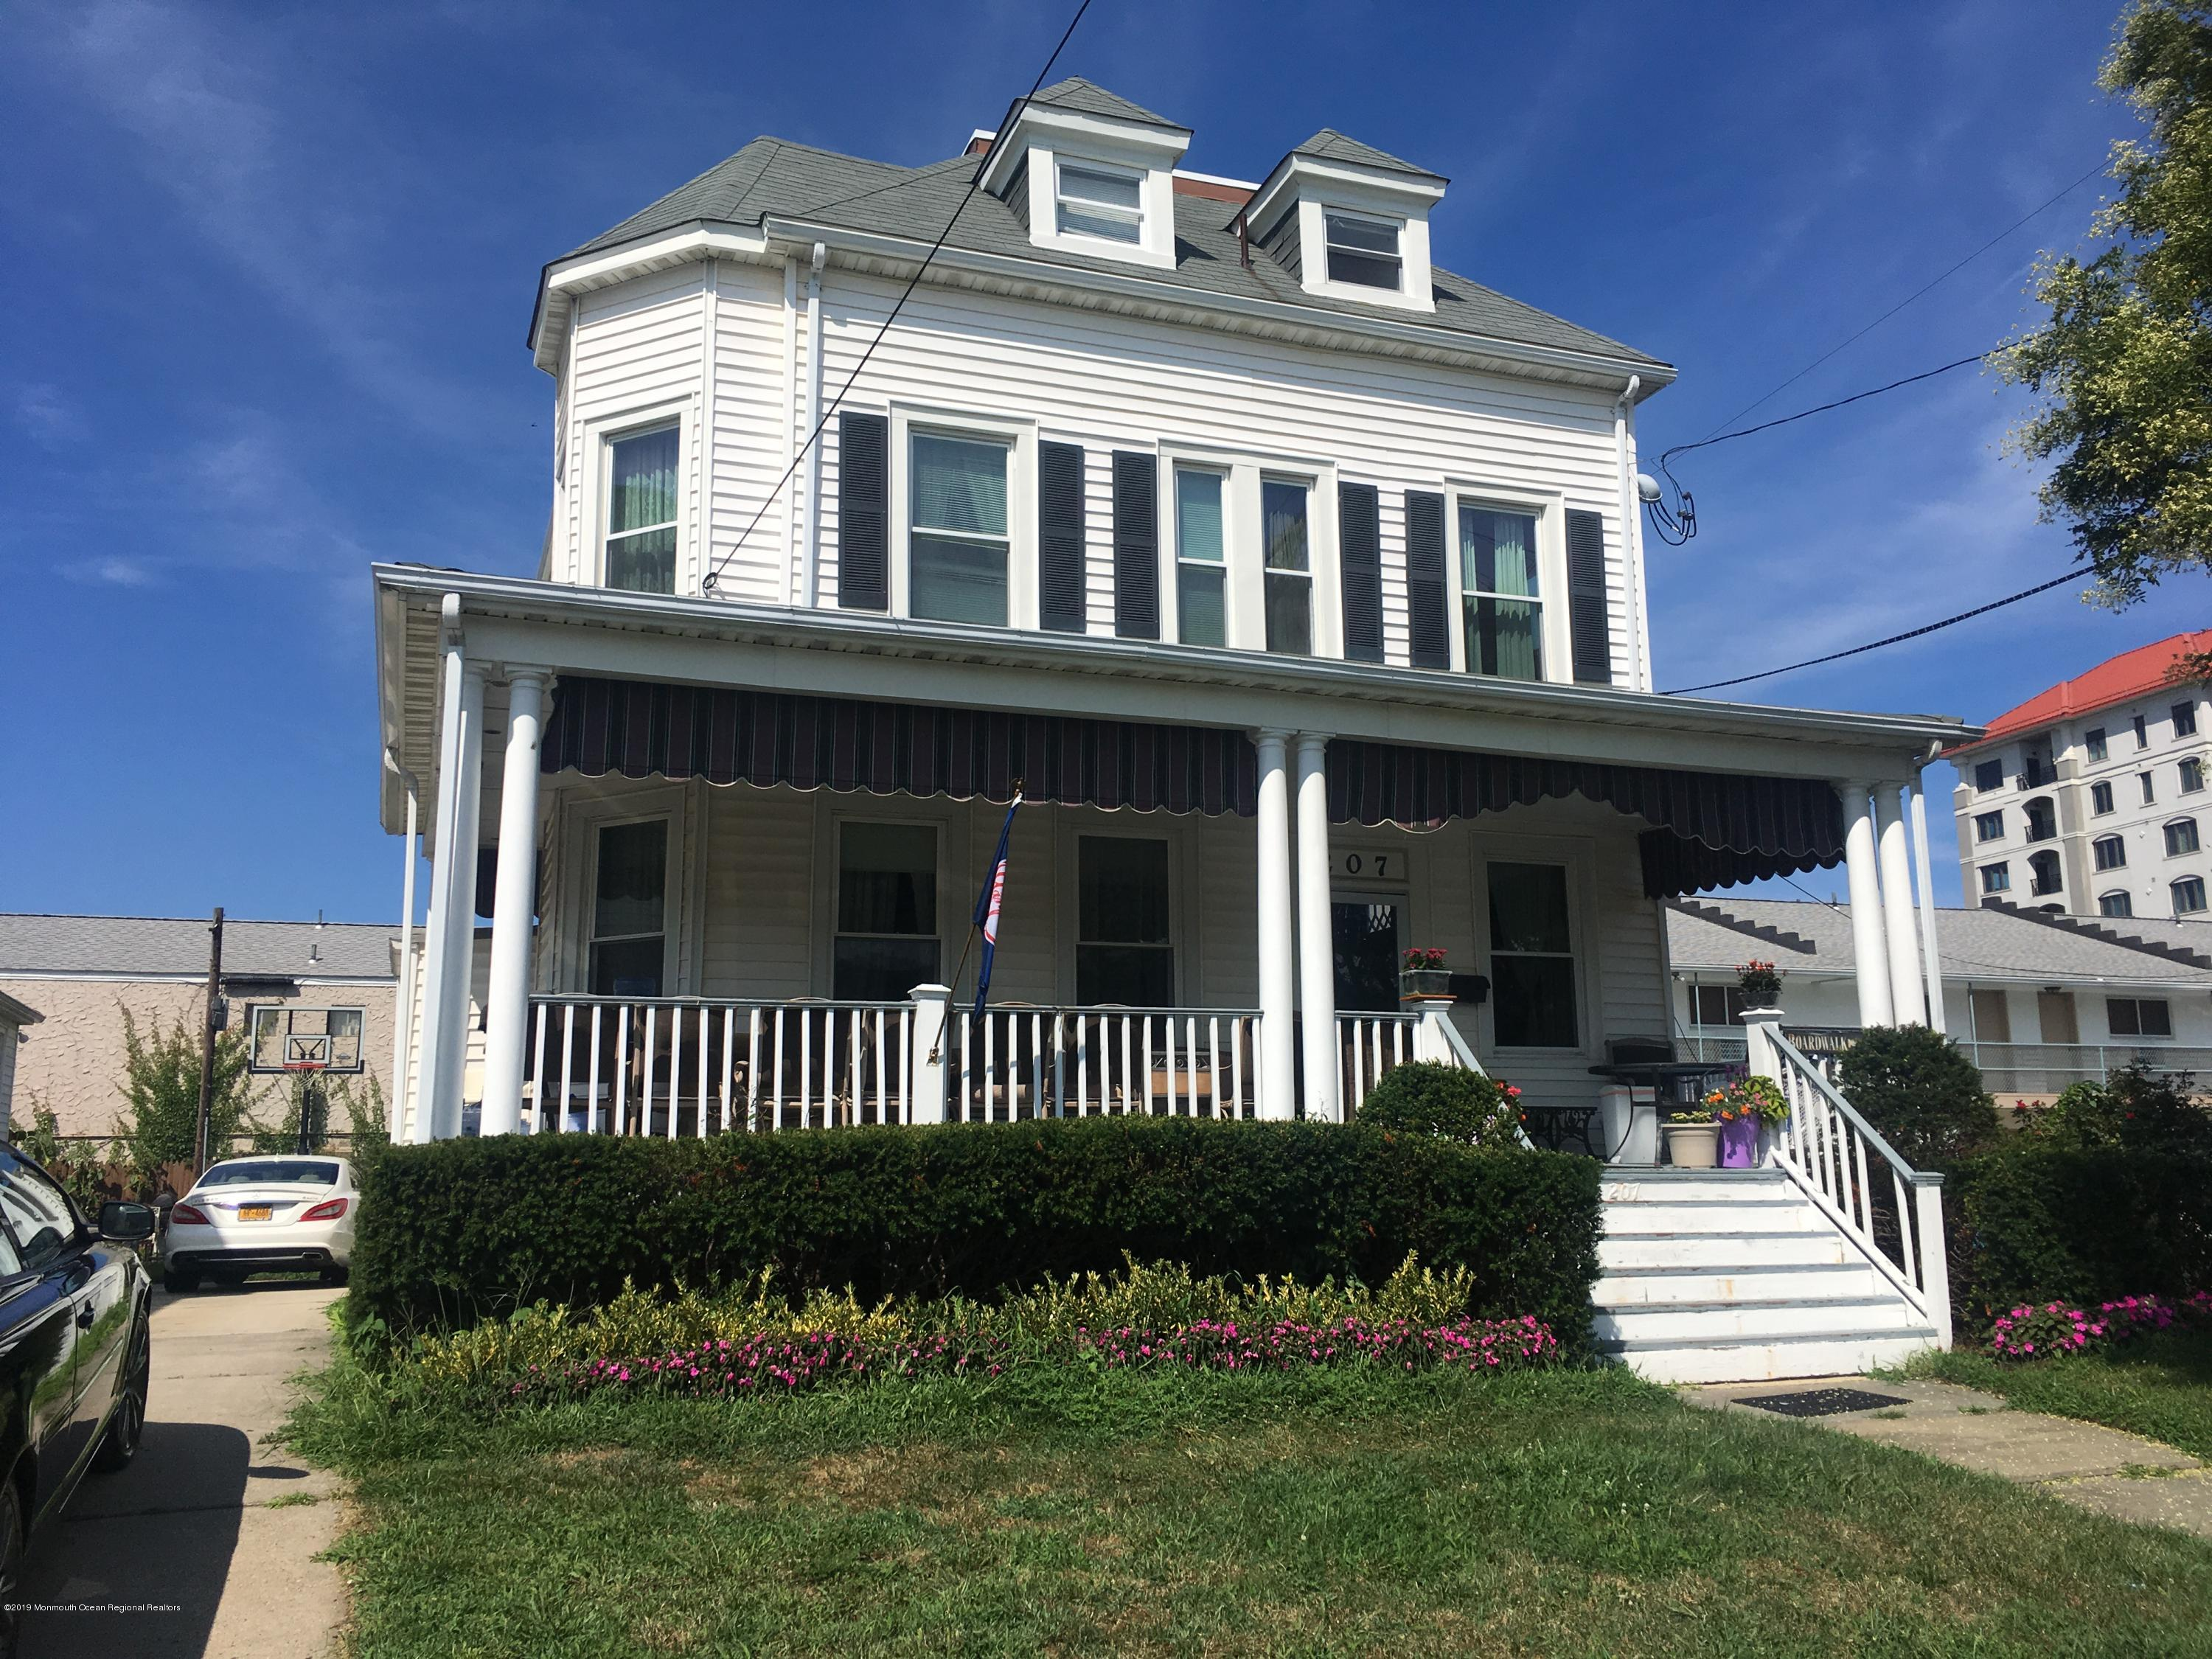 207 6TH AVENUE, ASBURY PARK, NJ 07712 | george coffenberg